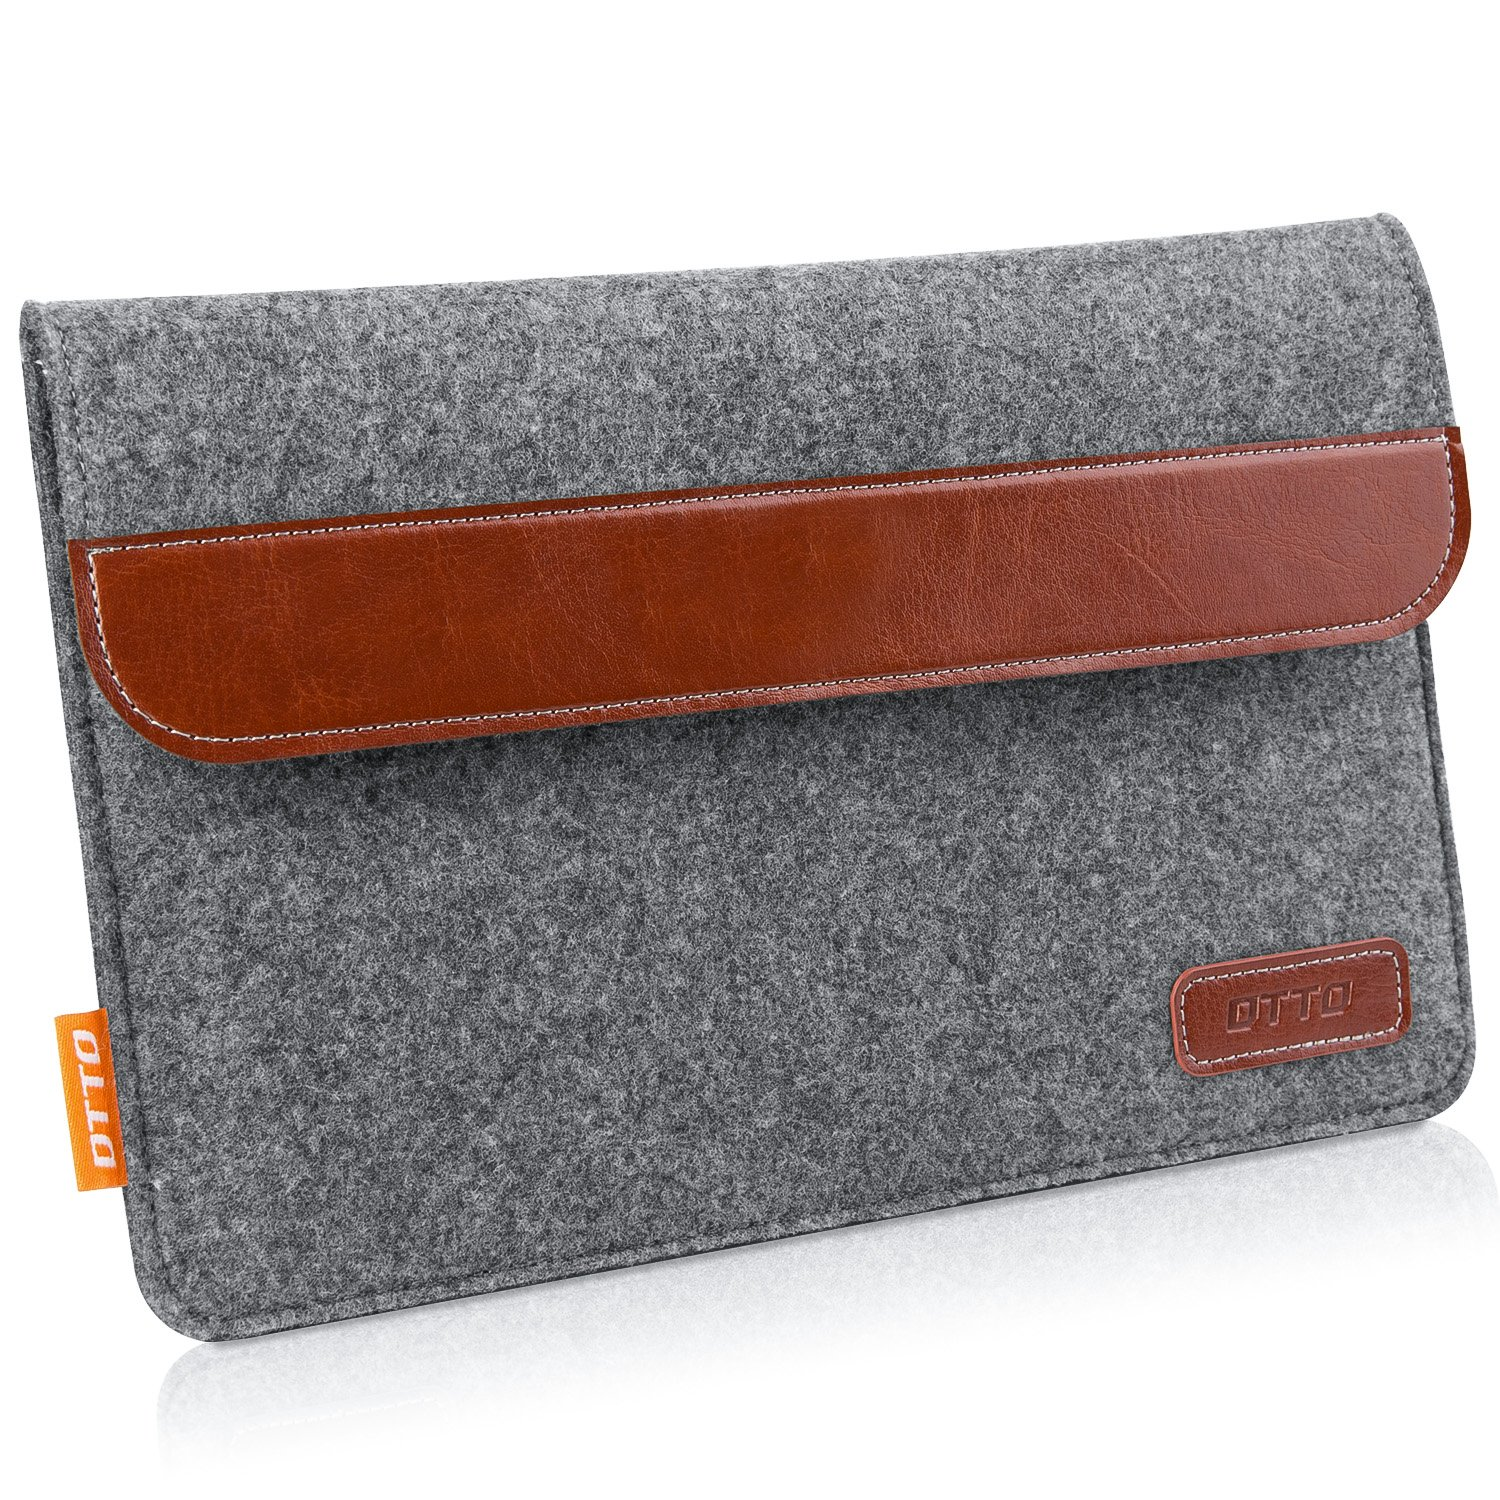 DTTO 7-8 Inch Tablet Sleeve Bag Portable Protective Sleeve Case Cover [Shock Resistant] with Accessory Pocket for iPad Mini 4/3 /2/1, Samsung Galaxy Tab S2 8-Inch, Tab A 8-Inch - Dark Gray